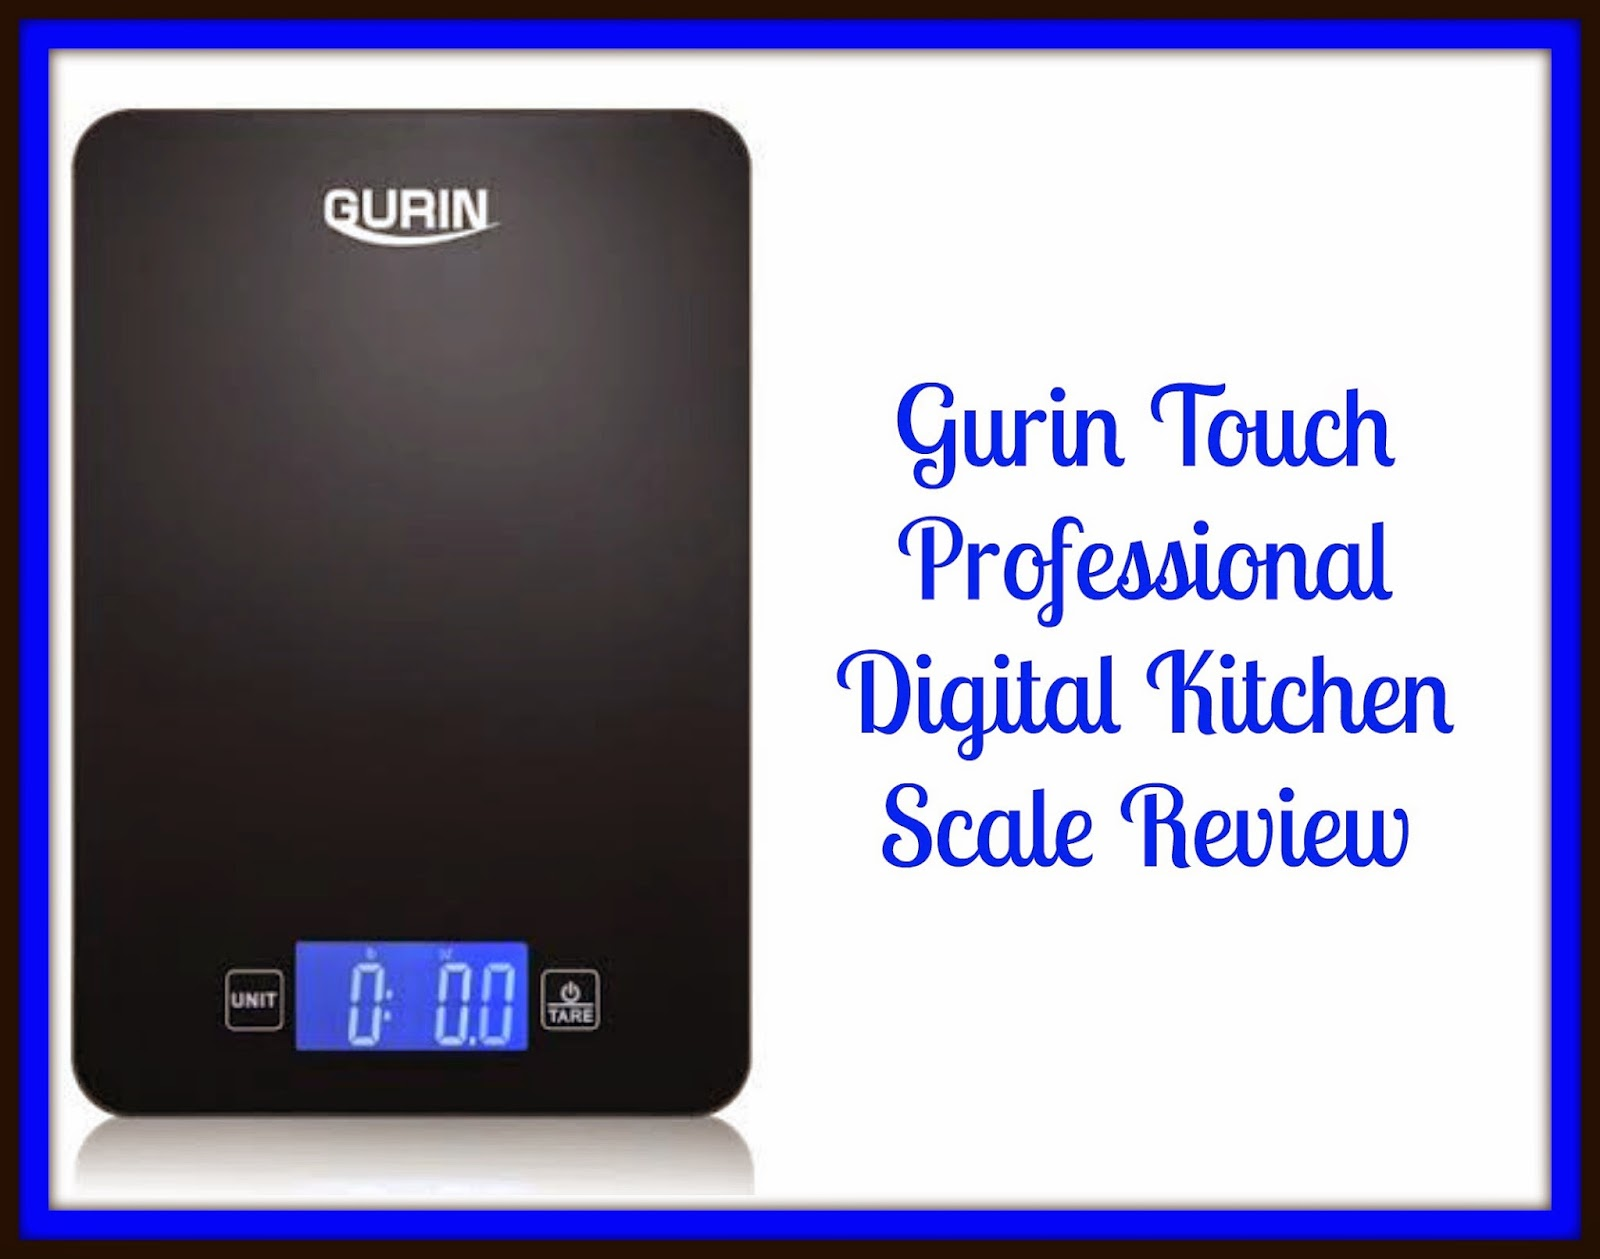 Here We Go Again Ready Gurin Touch Professional Digital Kitchen Scale Review